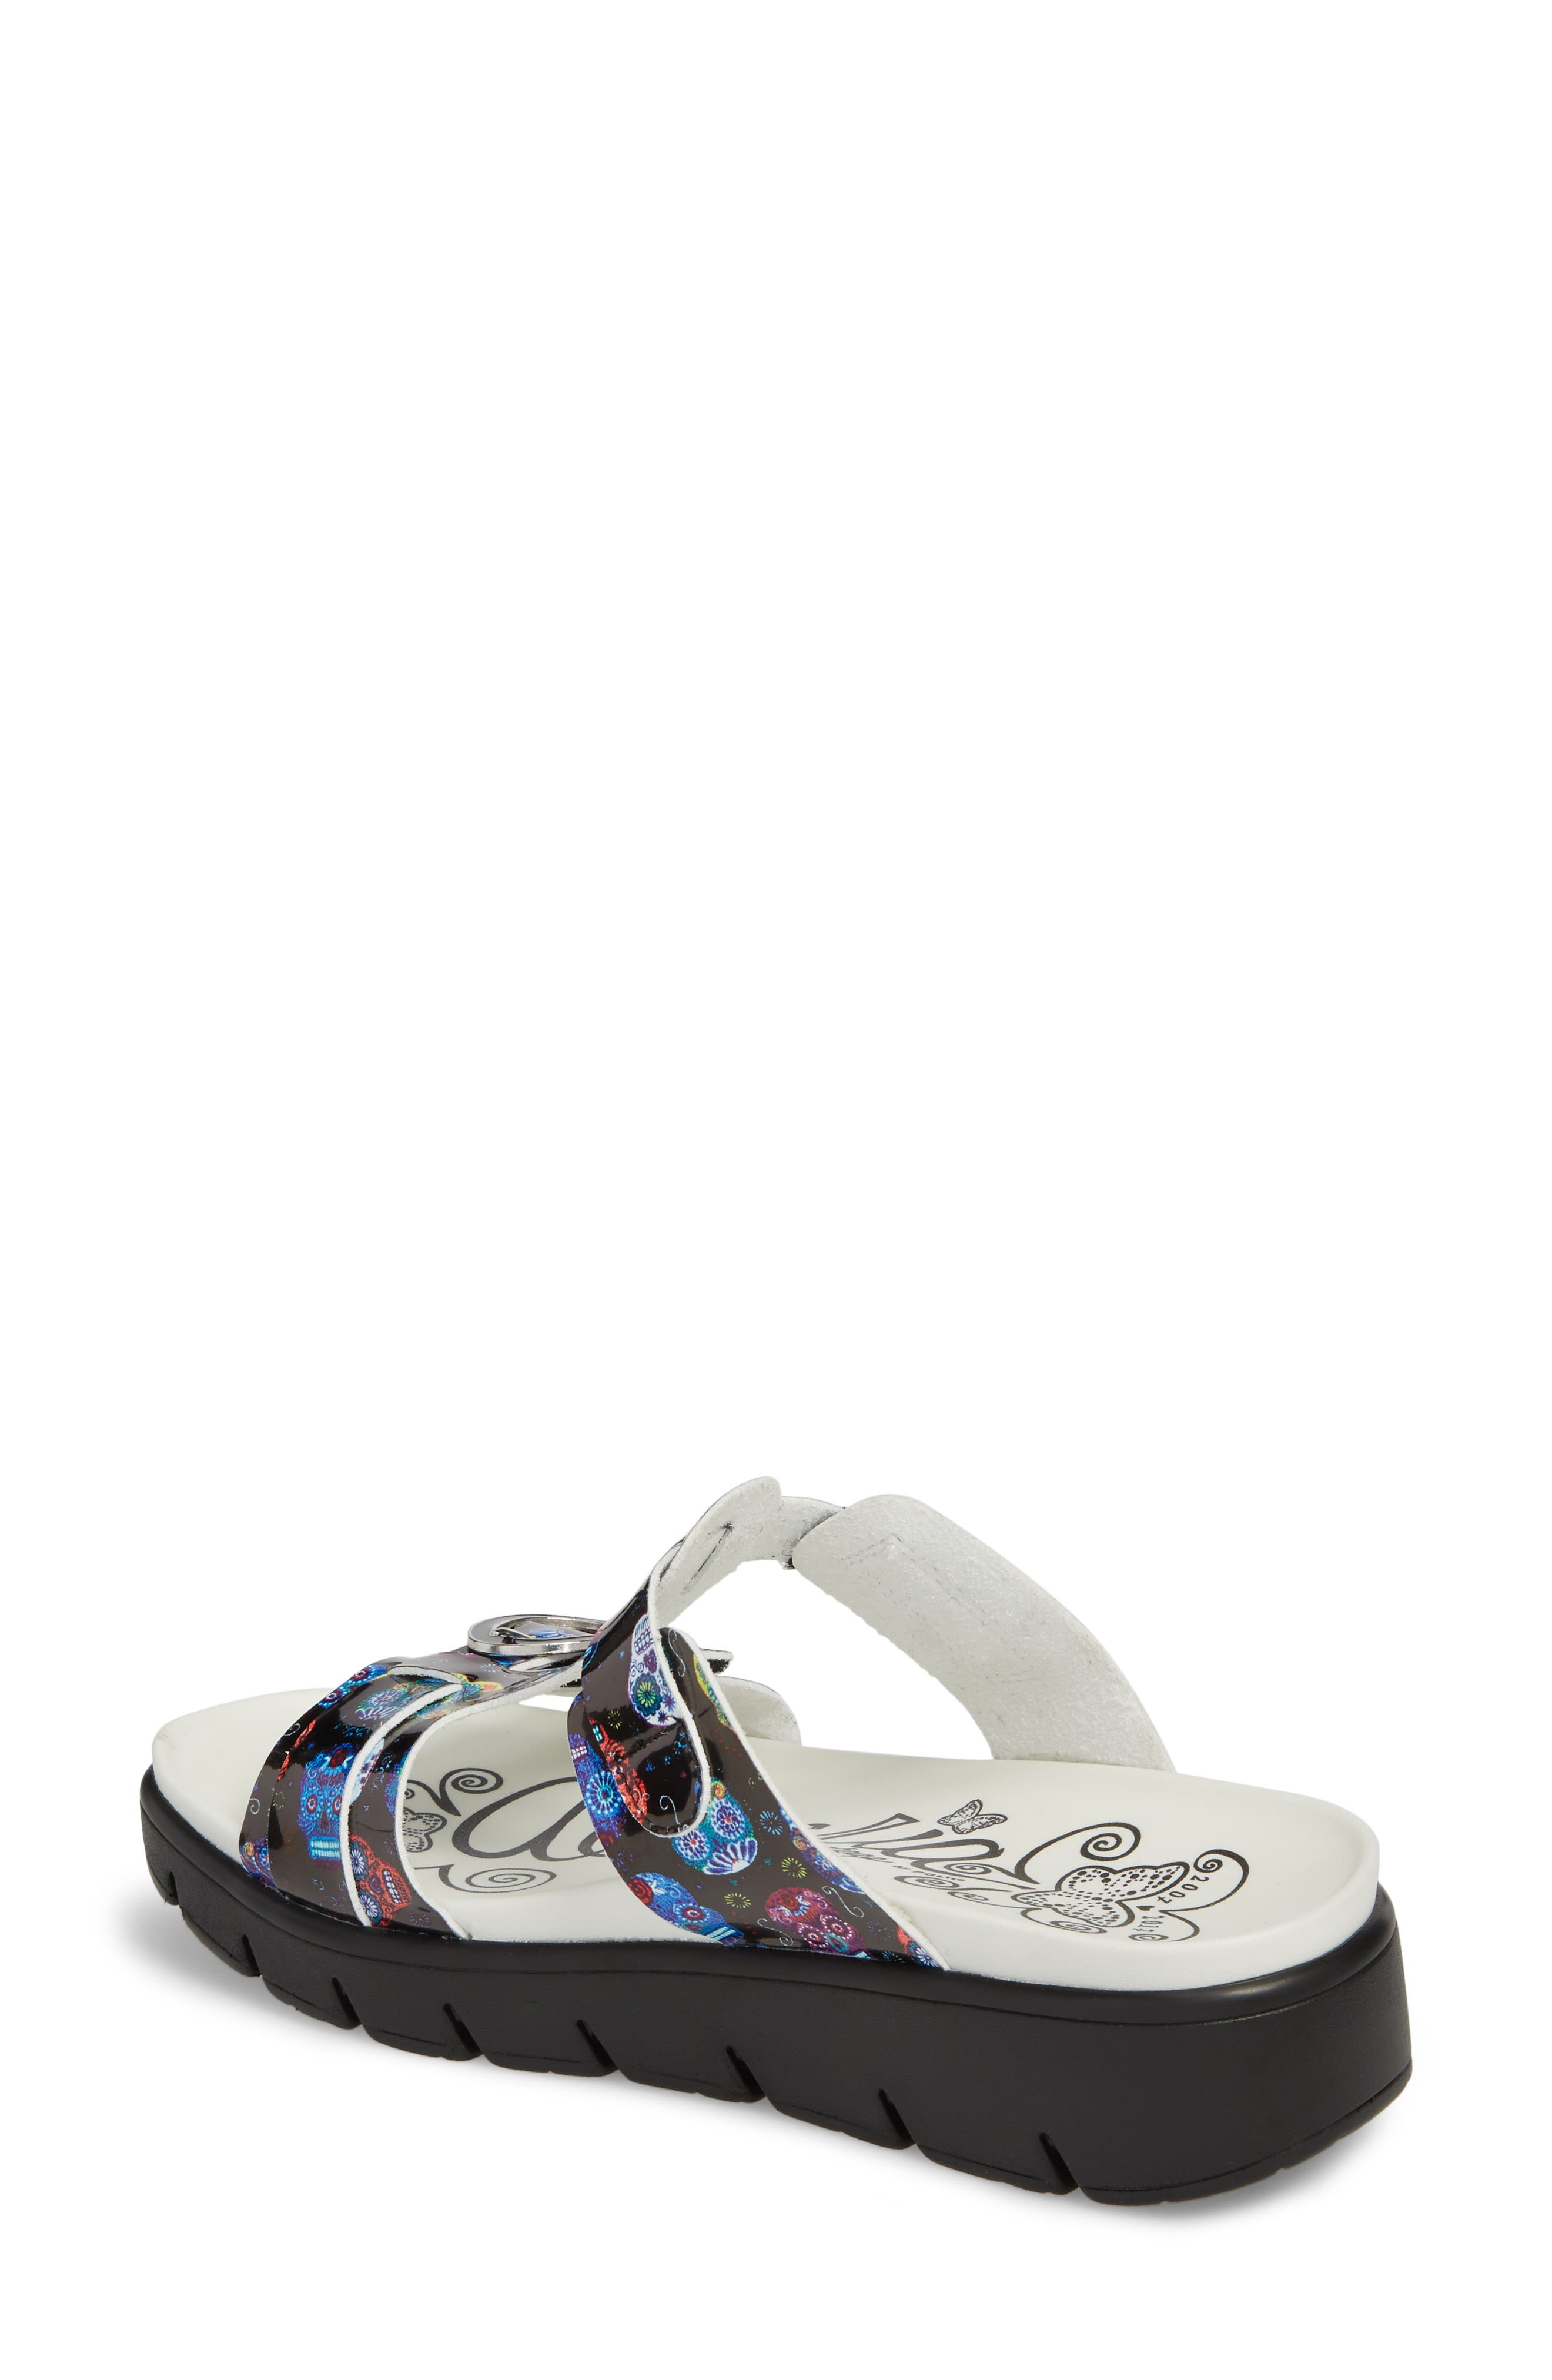 Vita Sandal,                             Alternate thumbnail 2, color,                             SUGAR SKULLS LEATHER